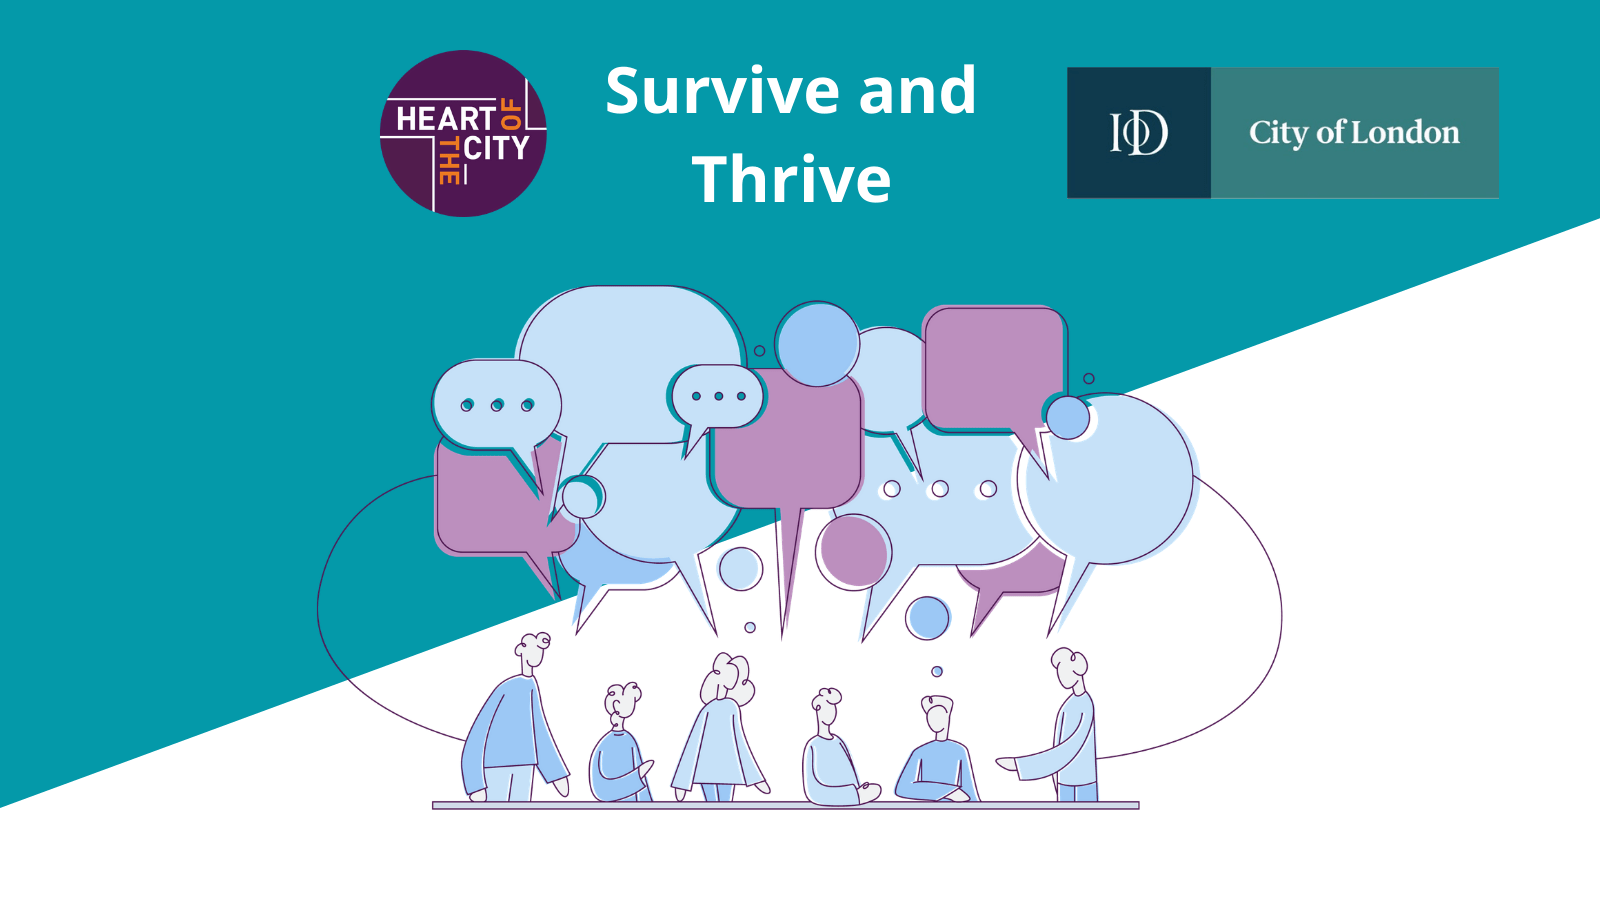 We're collaborating with the Institute of Directors City of London for our next Survive and Thrive series